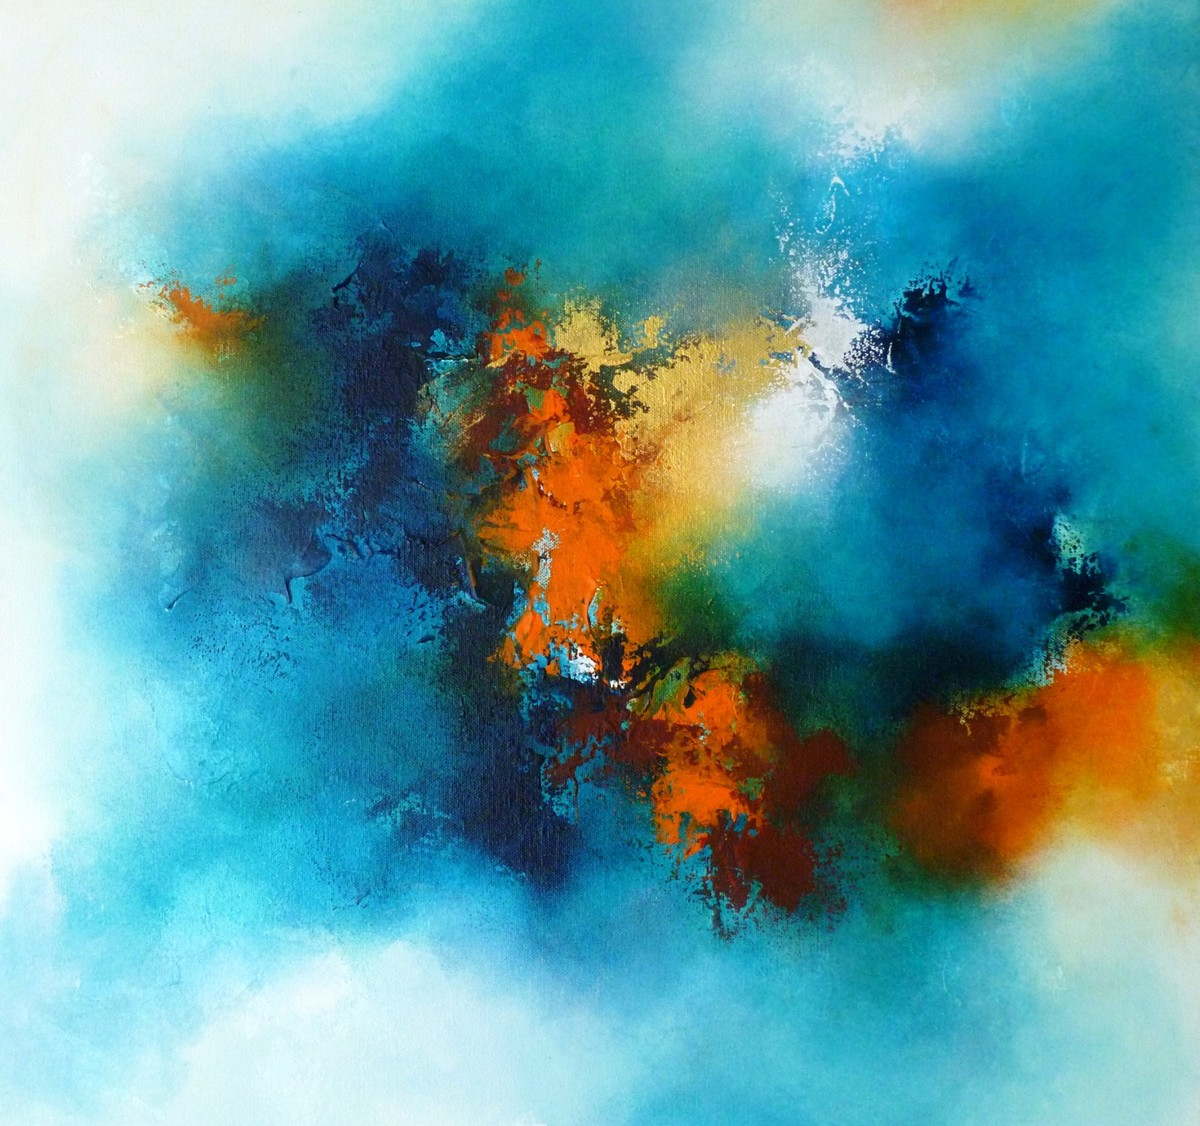 Spiritual by Ranjit Patil, Abstract Painting, Acrylic on Canvas, Cyan color